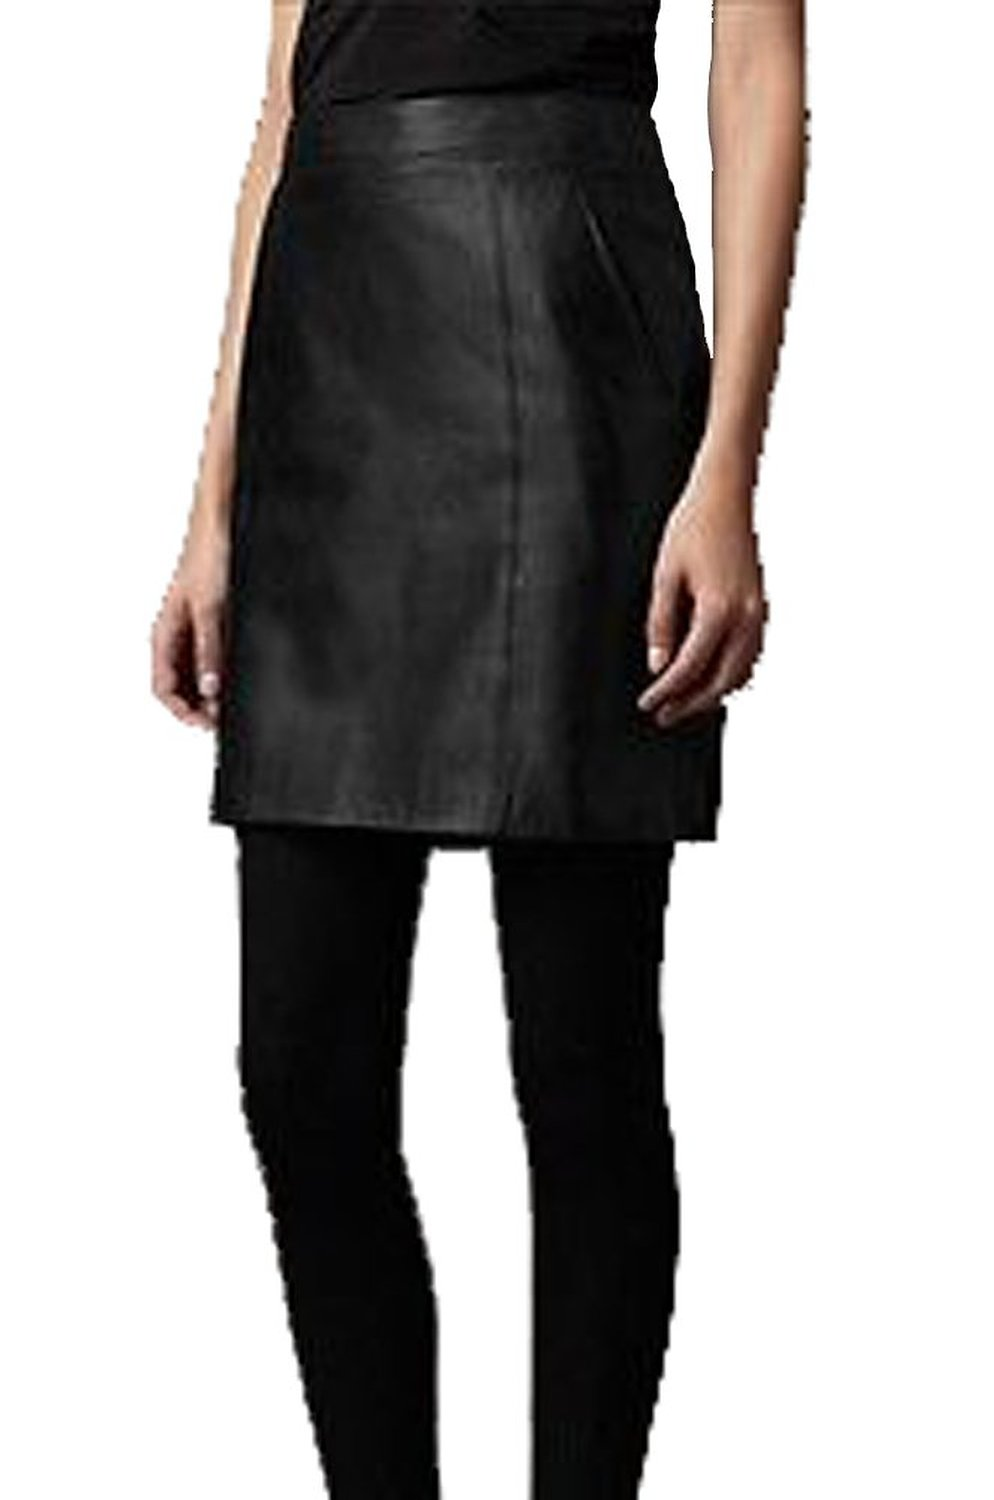 Career faux leather black pencil straight skirt dress at amazon women's clothing store: